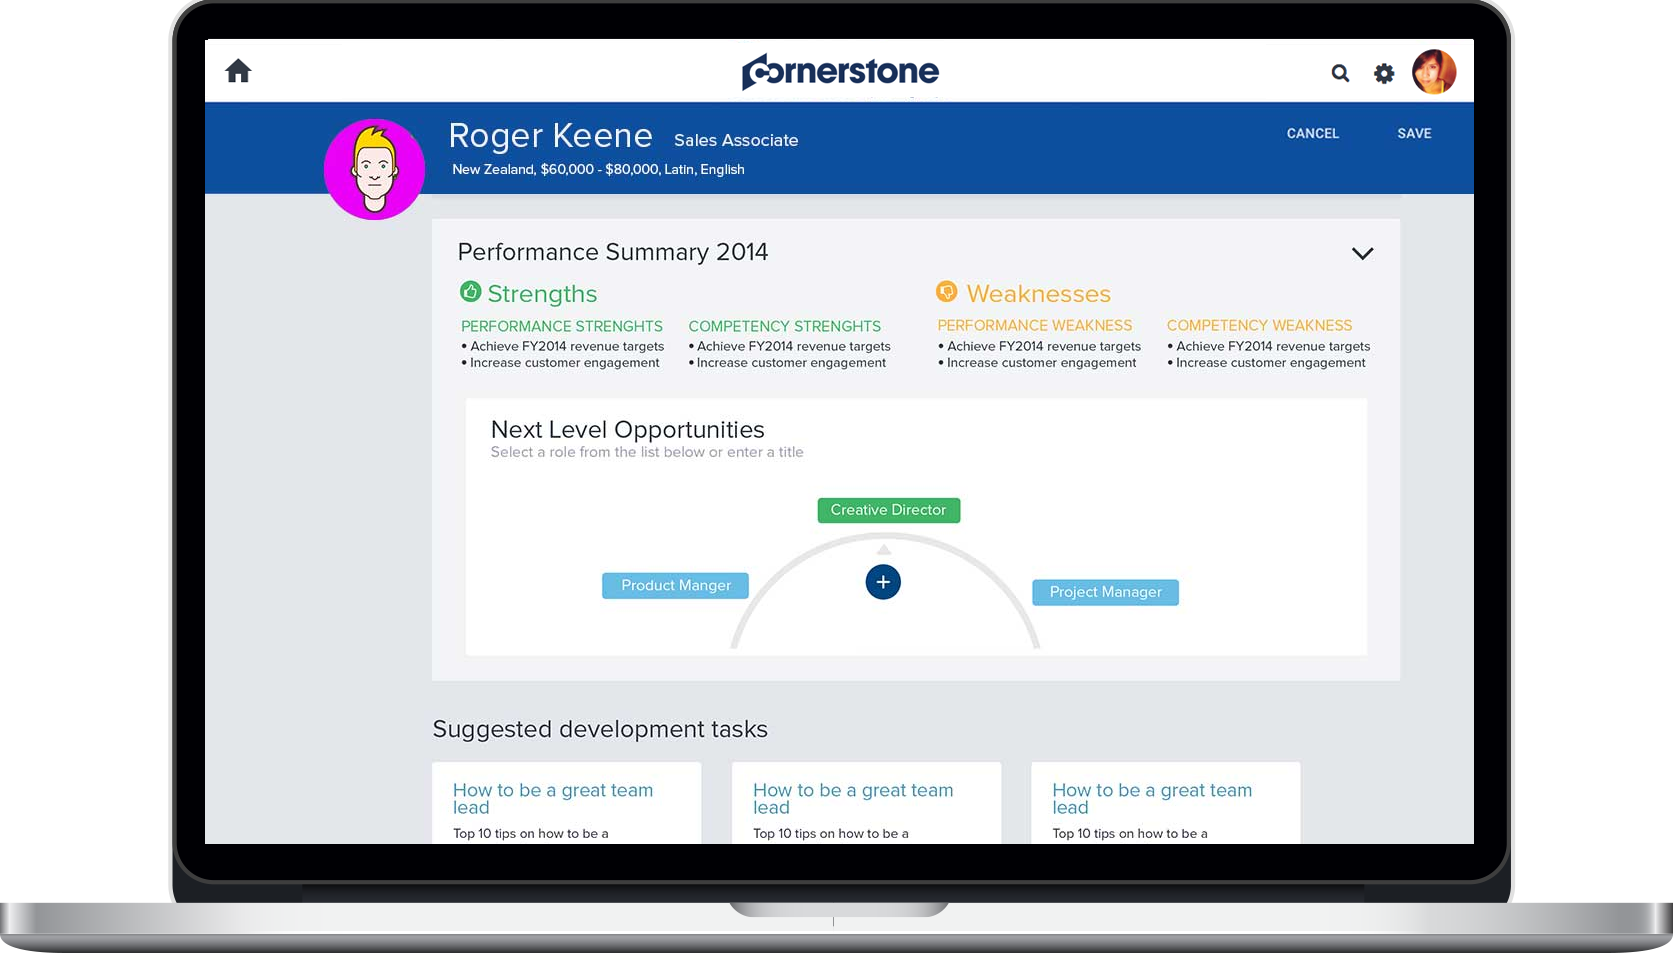 Performance Summary provides in-depth details such as strengths and weaknesses, next-level opportunities and suggested development tasks.